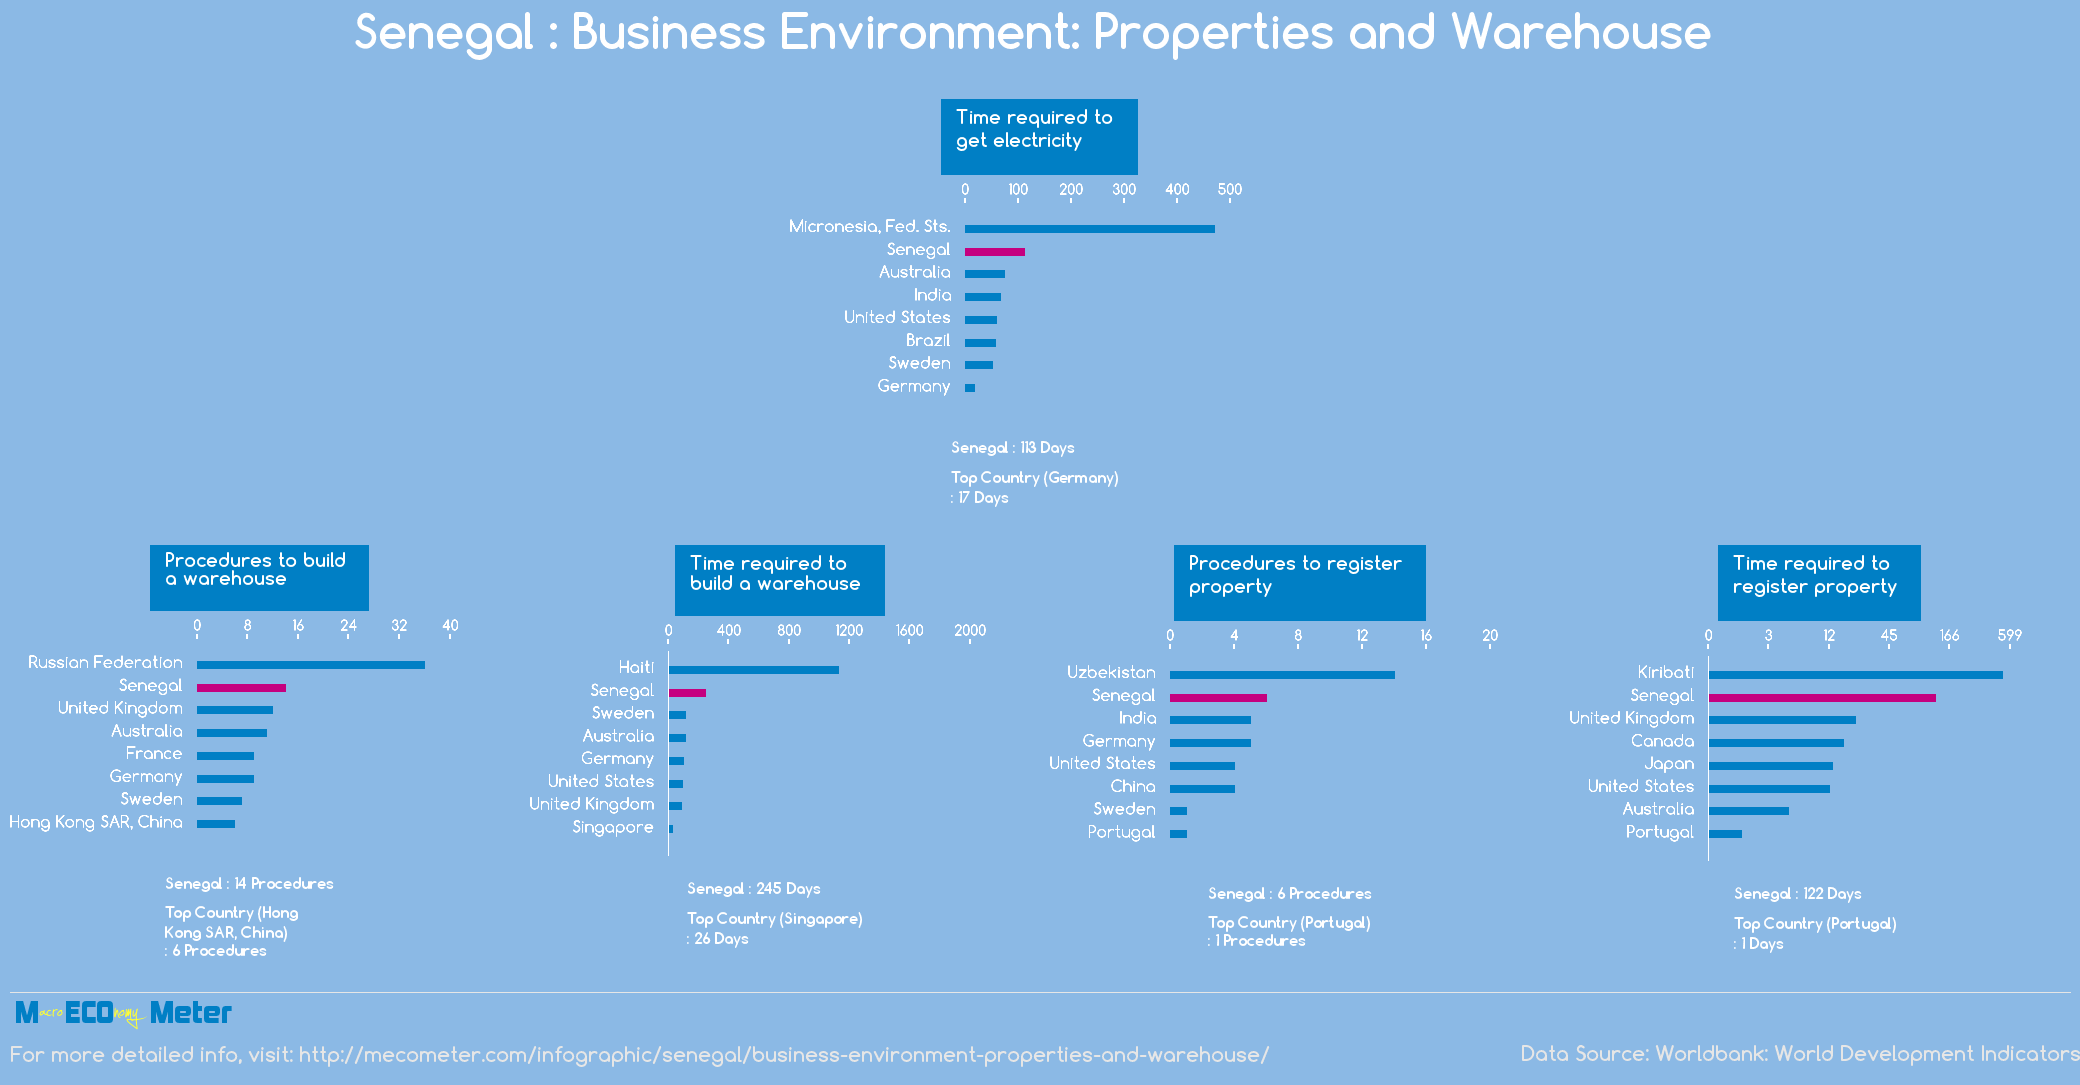 Senegal : Business Environment: Properties and Warehouse